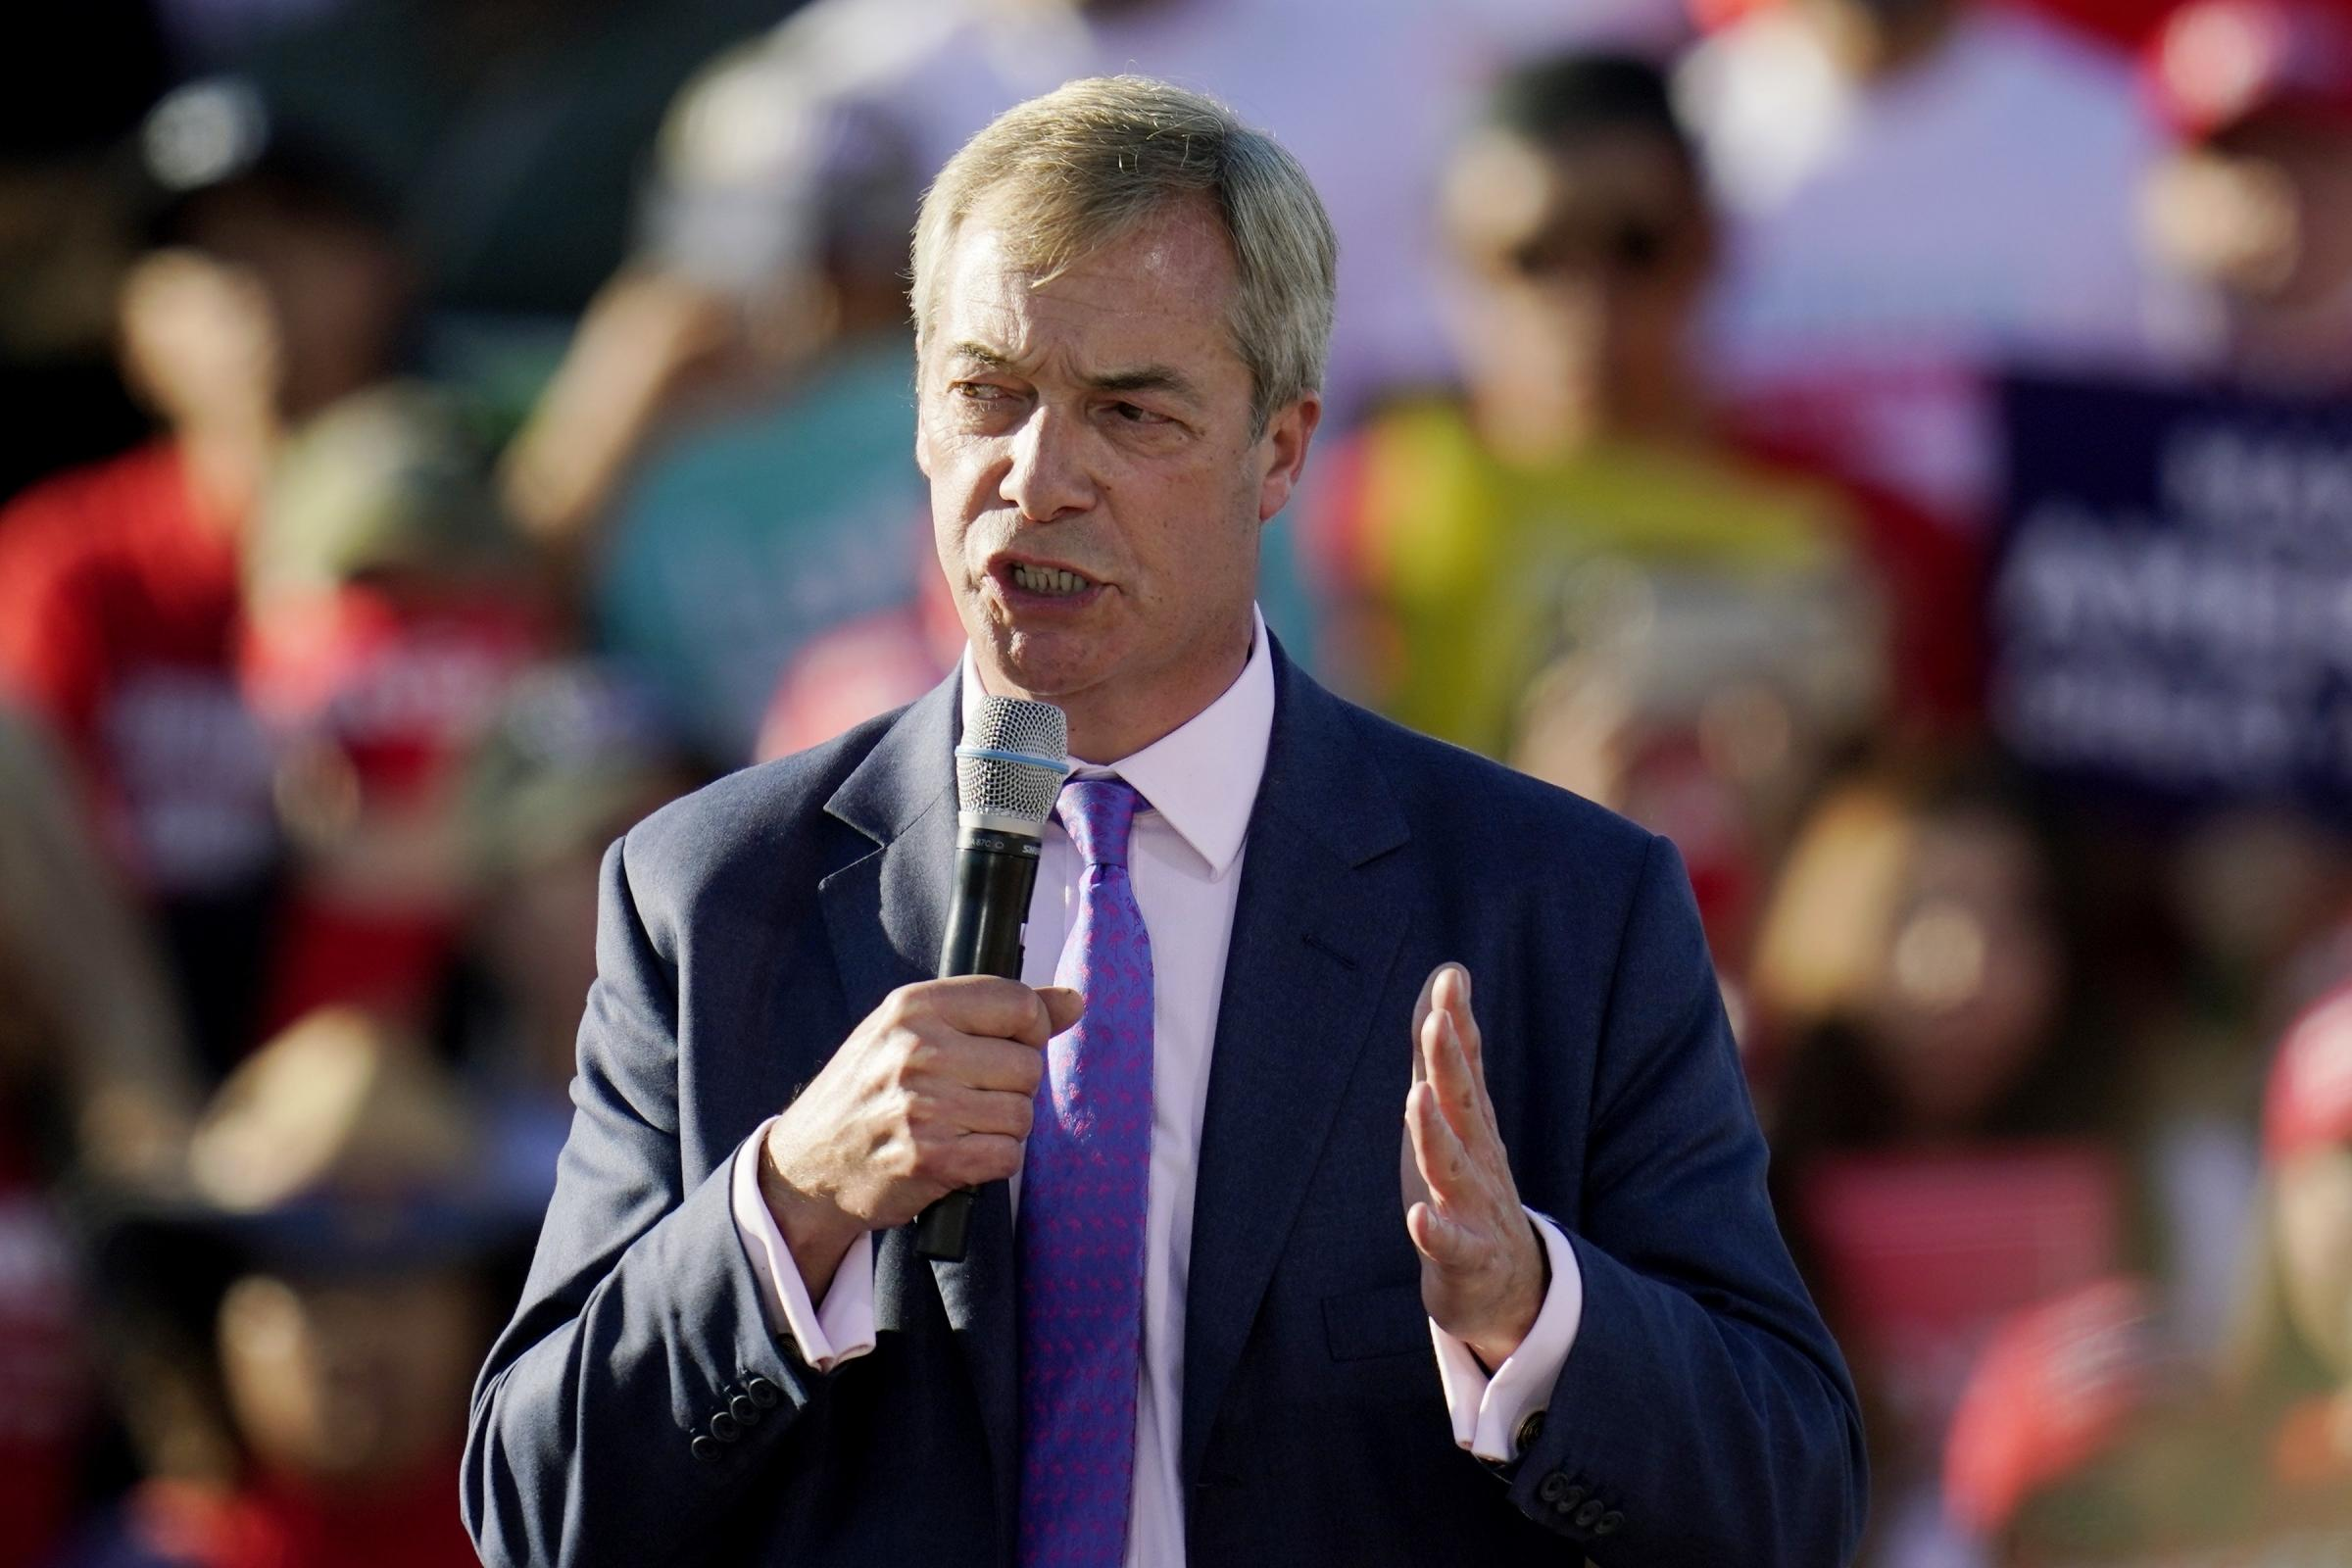 Farage hails Trump as 'bravest person I have ever met' during Arizona rally